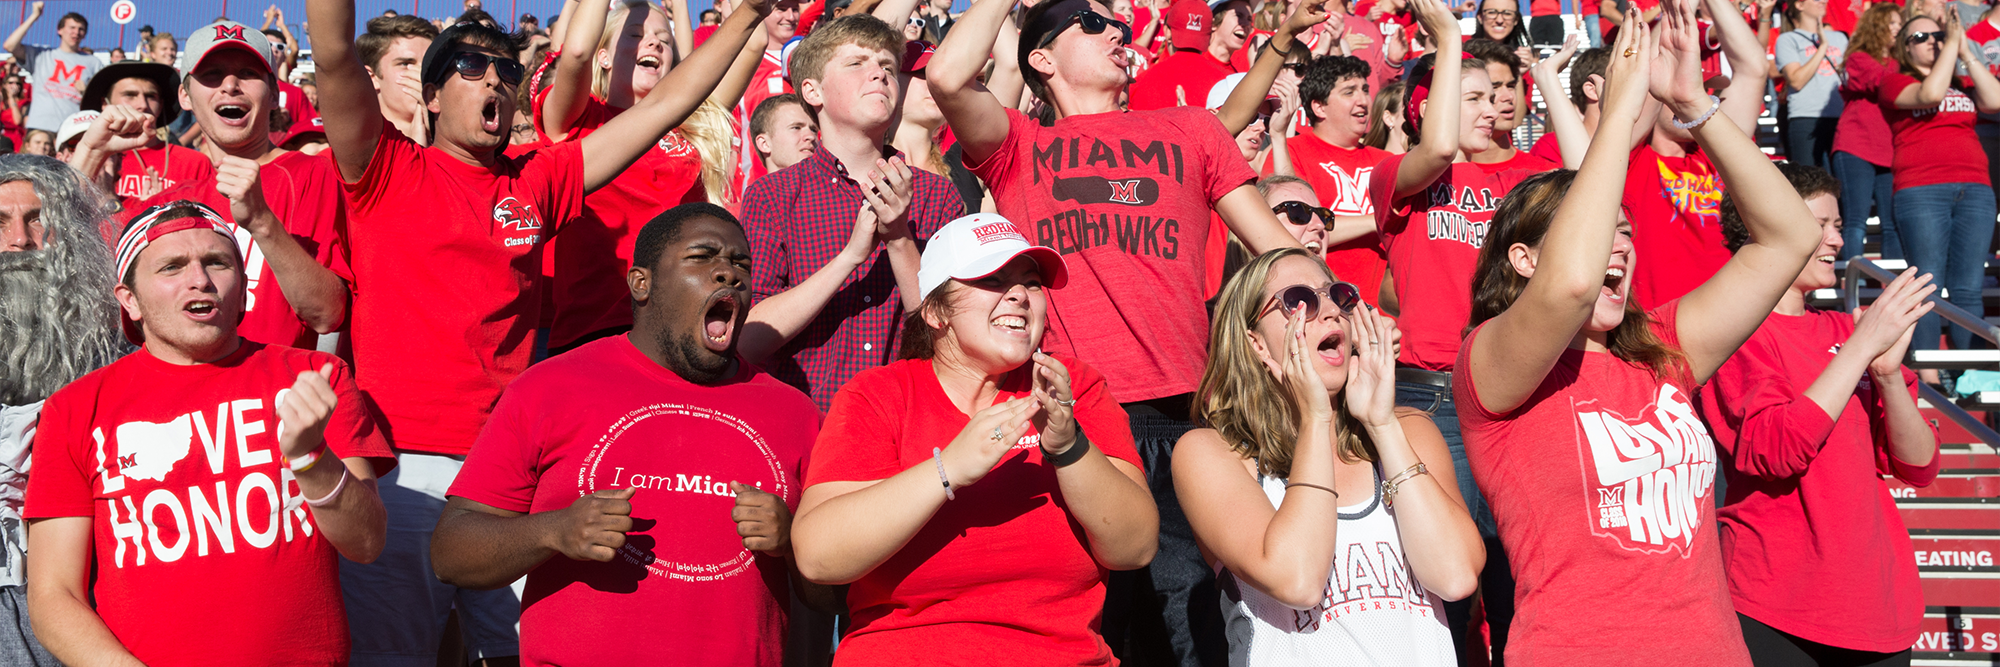 Students cheer on the Redhawks during a sporting event at Miami University.